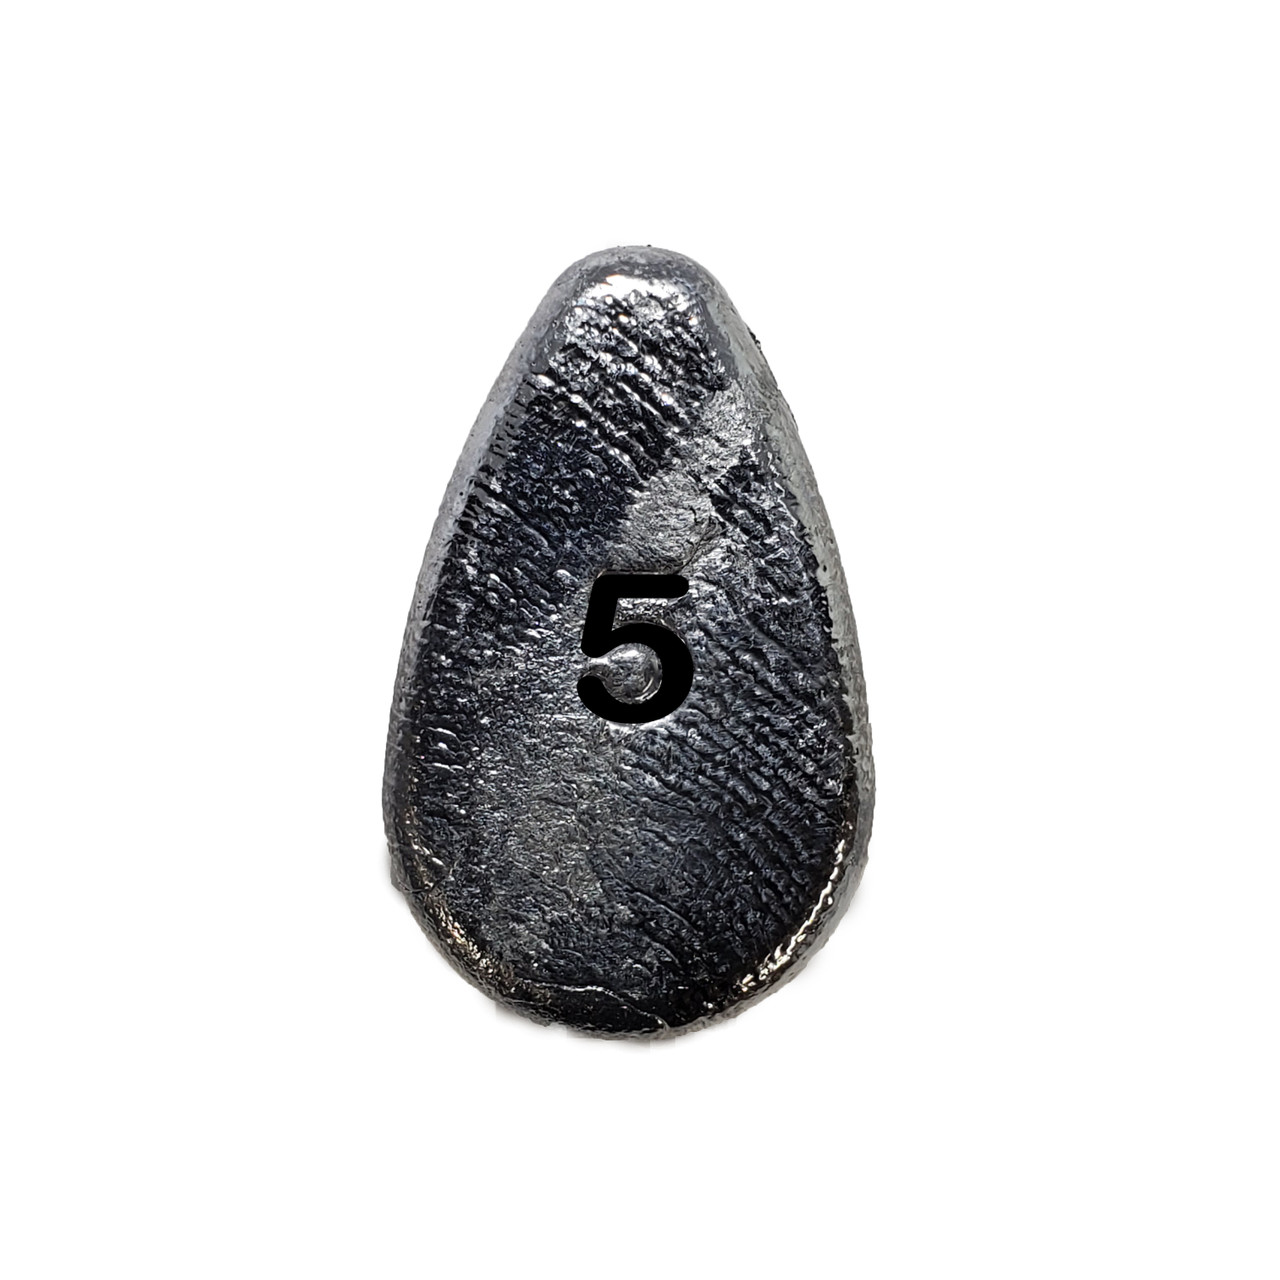 No Roll sinkers are quickly becoming the favorite choice for river fisherman. The hole through the center of the sinker allows your line to slide like an egg sinker. The flat sides keep the sinker from rolling across the bottom of the river.